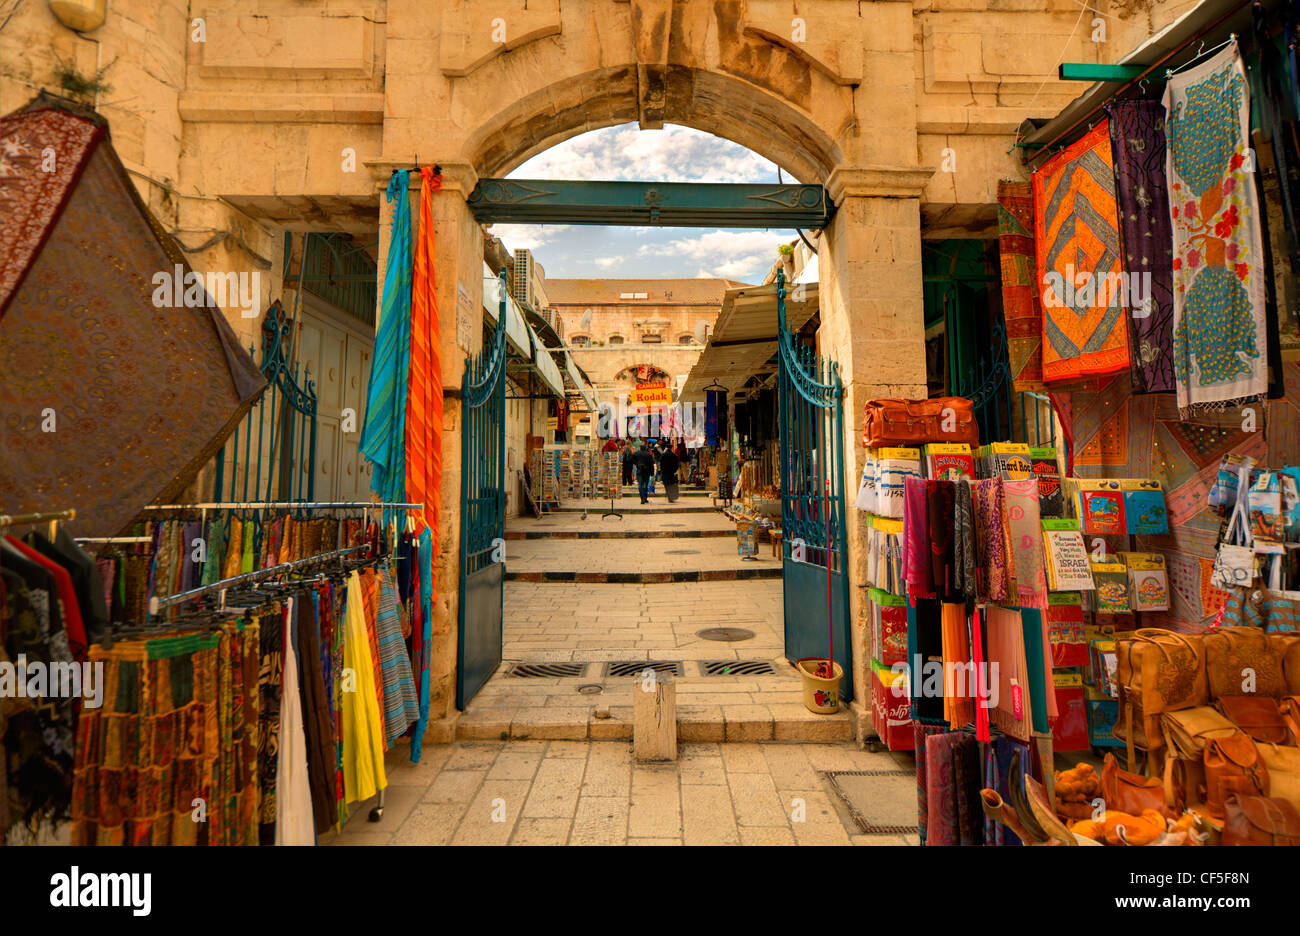 Arab marketplace in the old city of Jerusalem, Israel - Stock Image